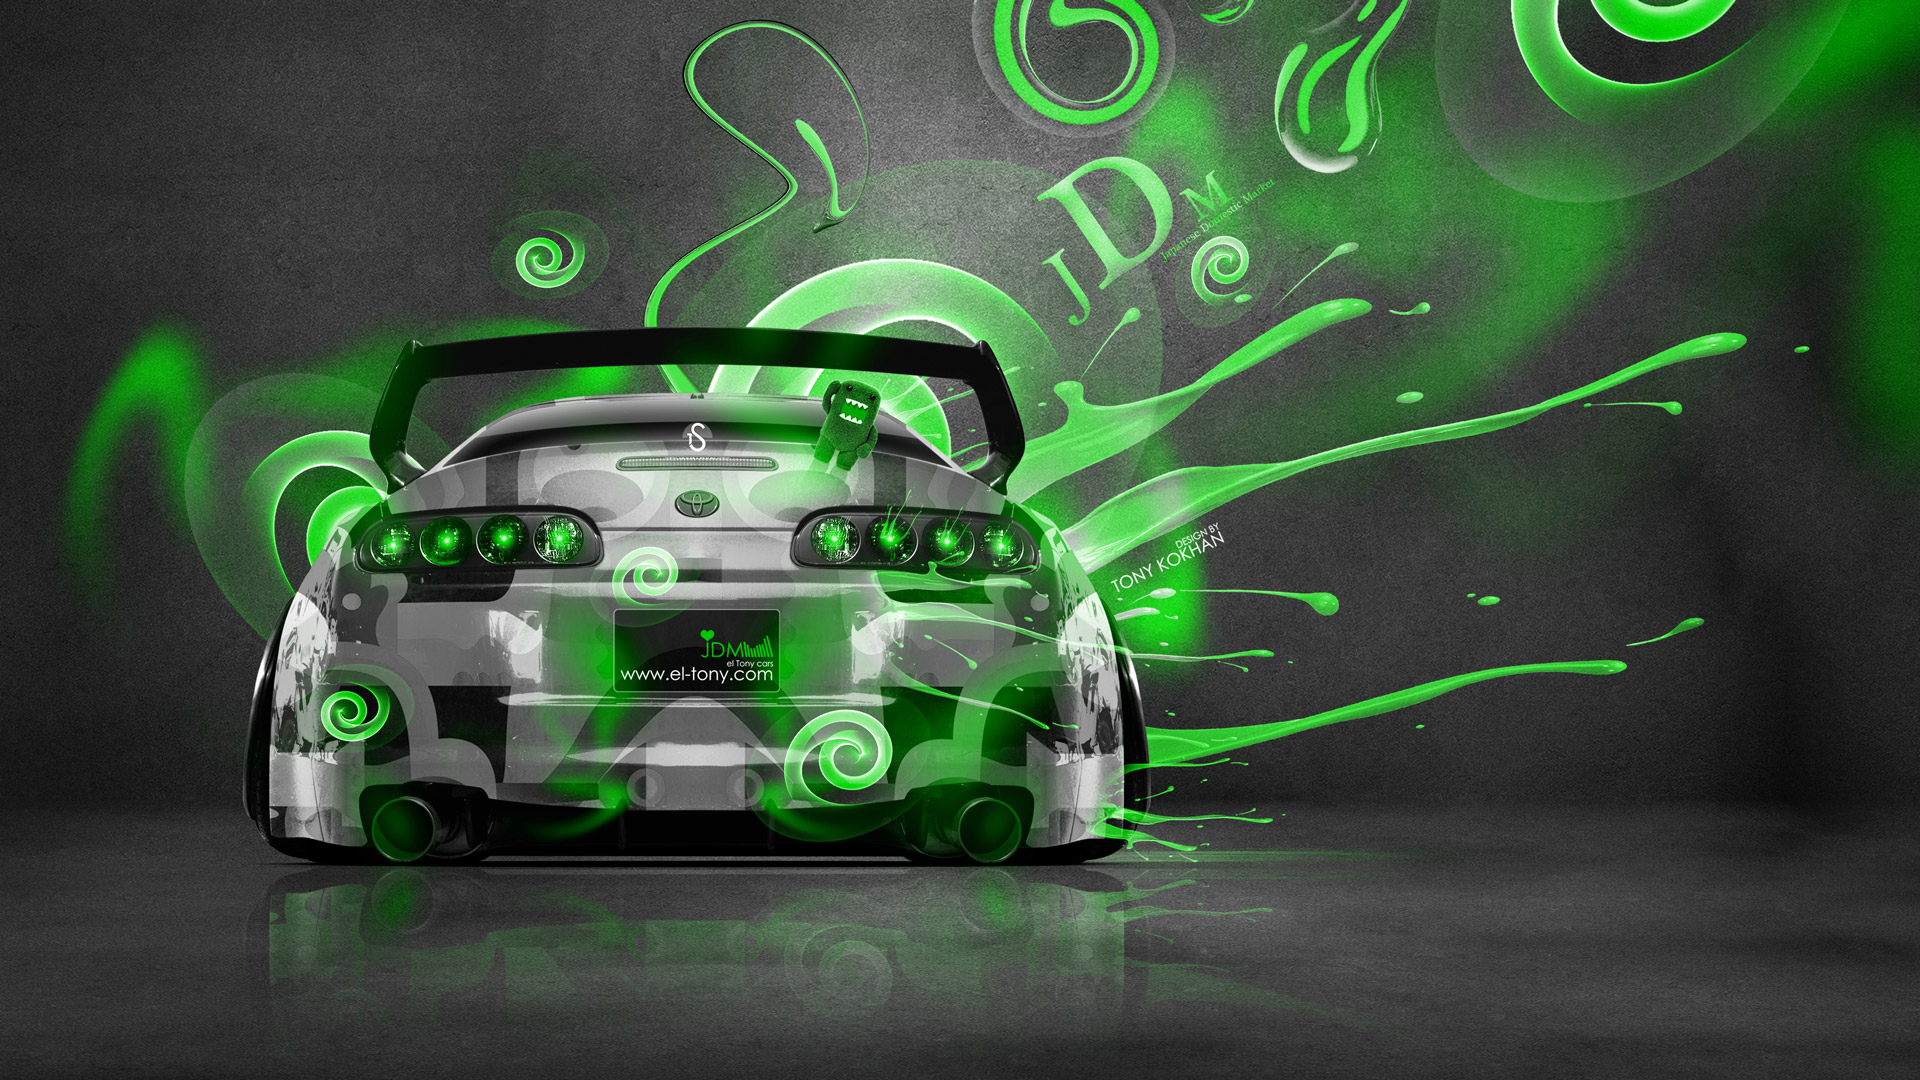 tony style back 3d green neon car 2014 hd wallpapers design by tony 1920x1080